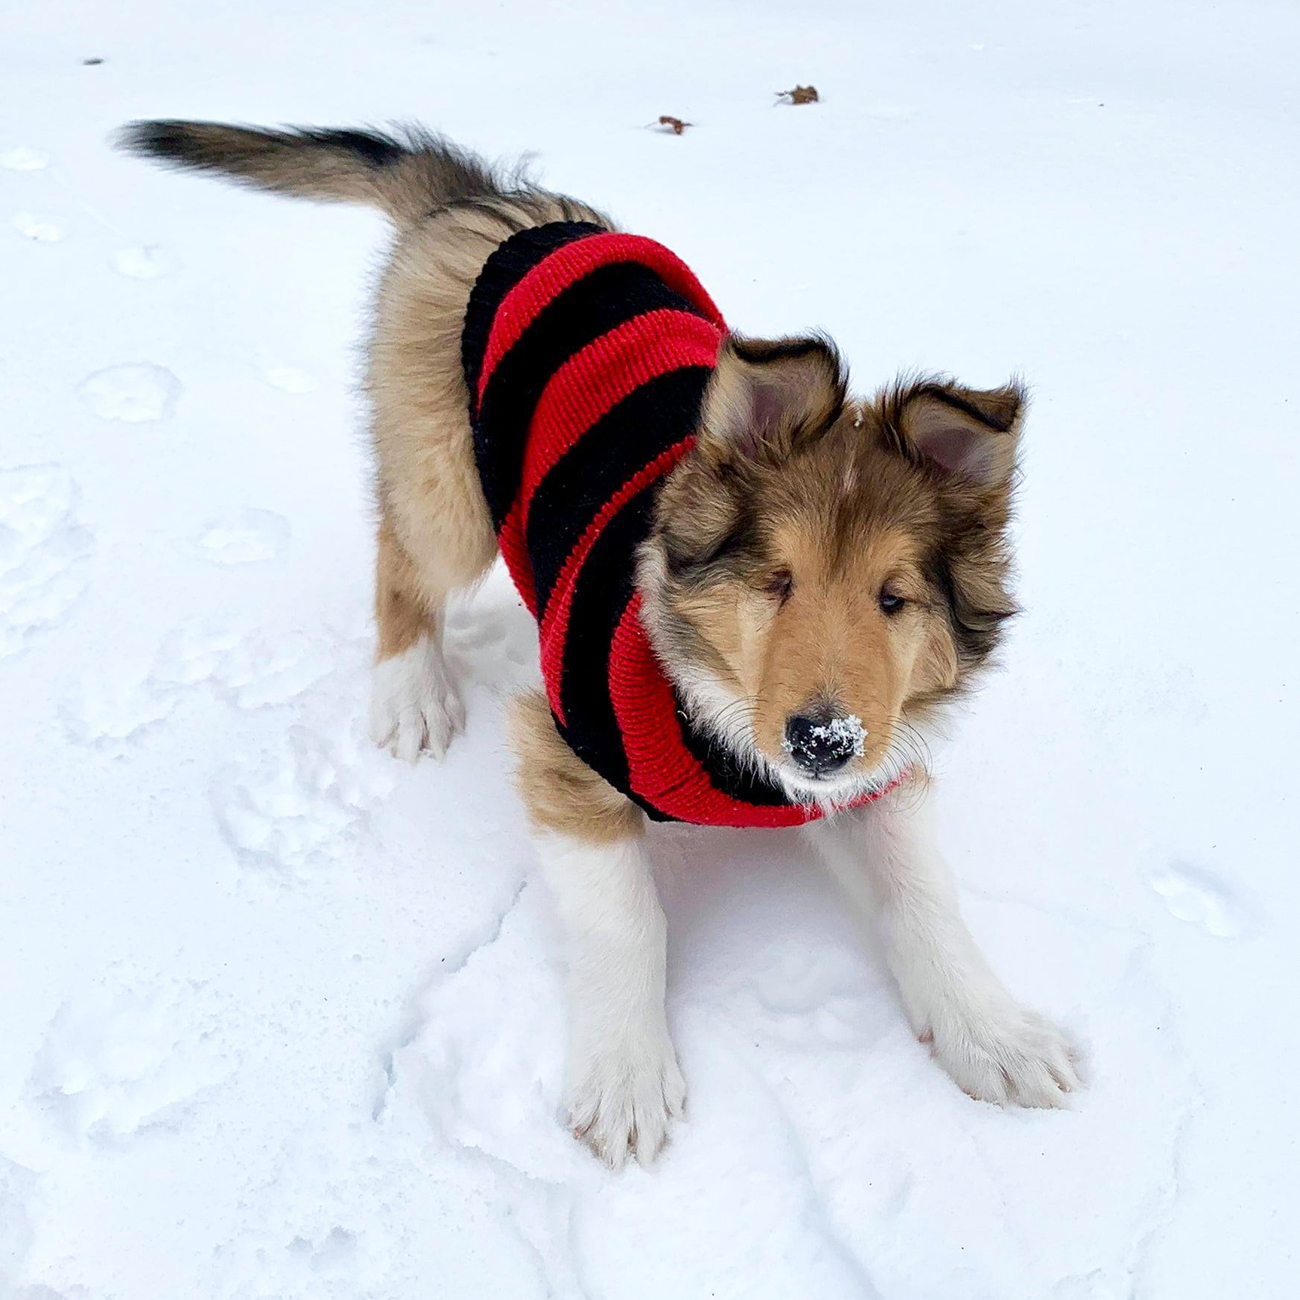 Blind collie with sweater plays with snow